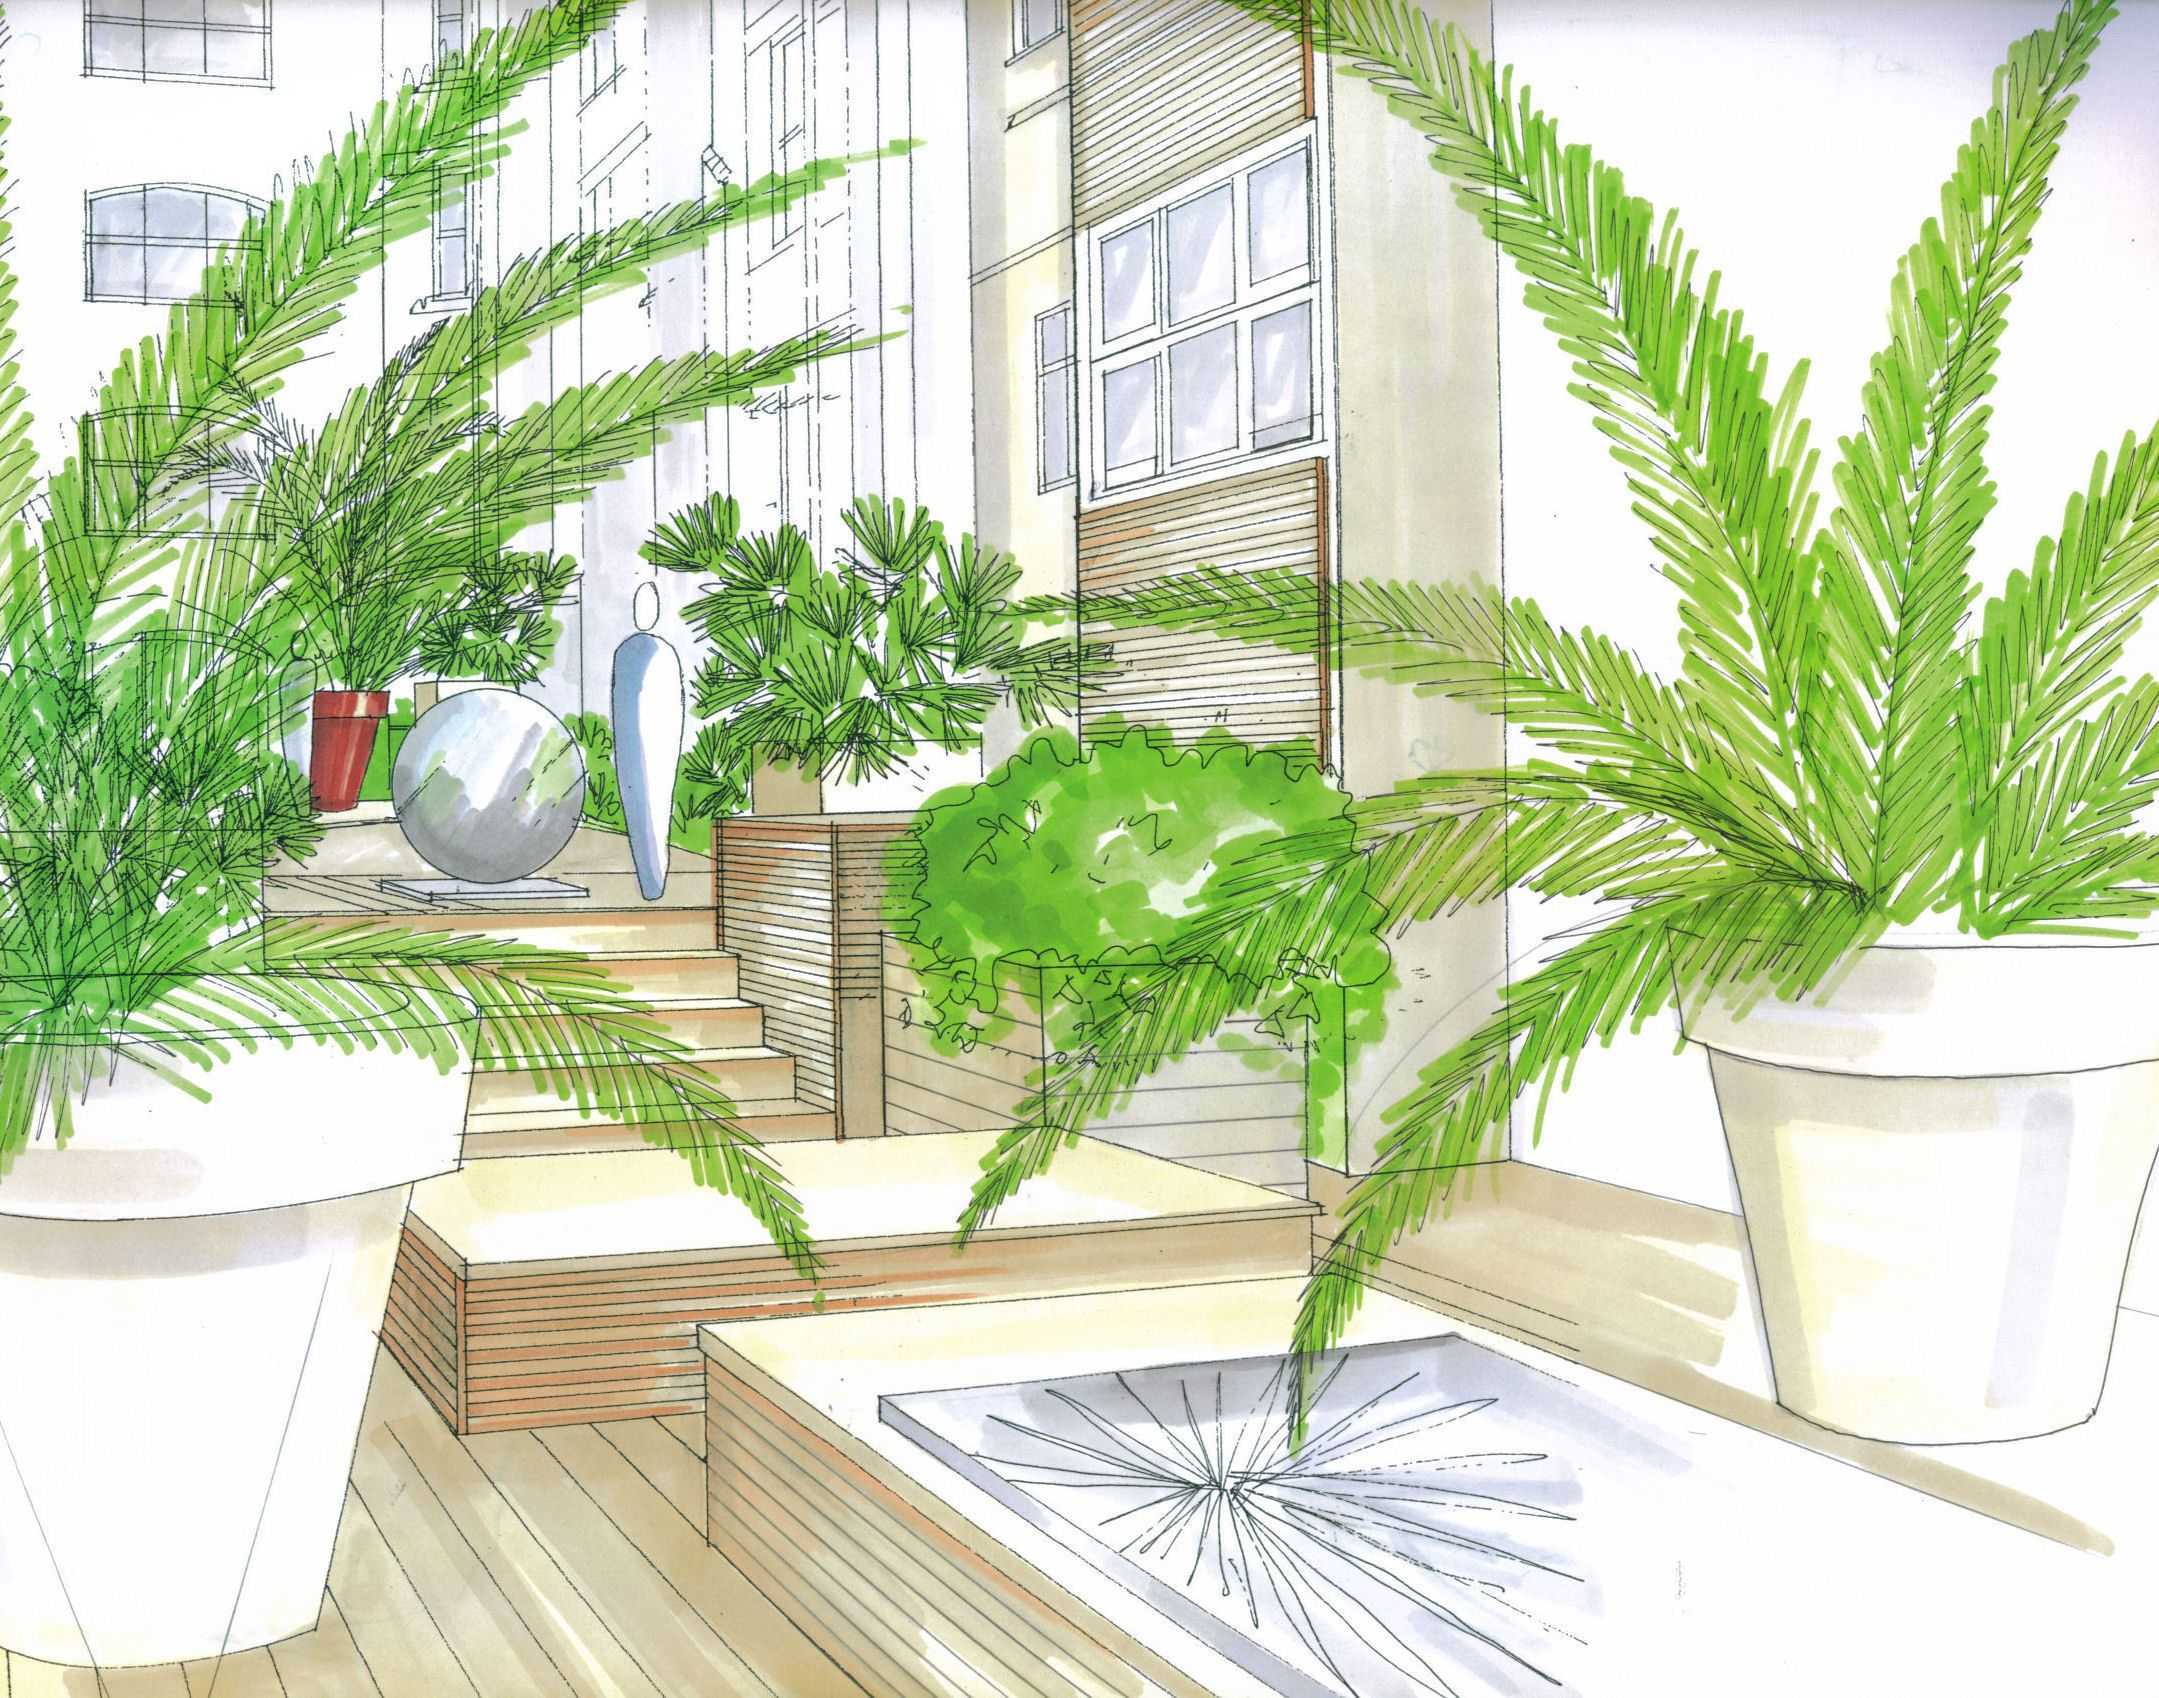 courtyard illustration in copic markers by grozone landscape